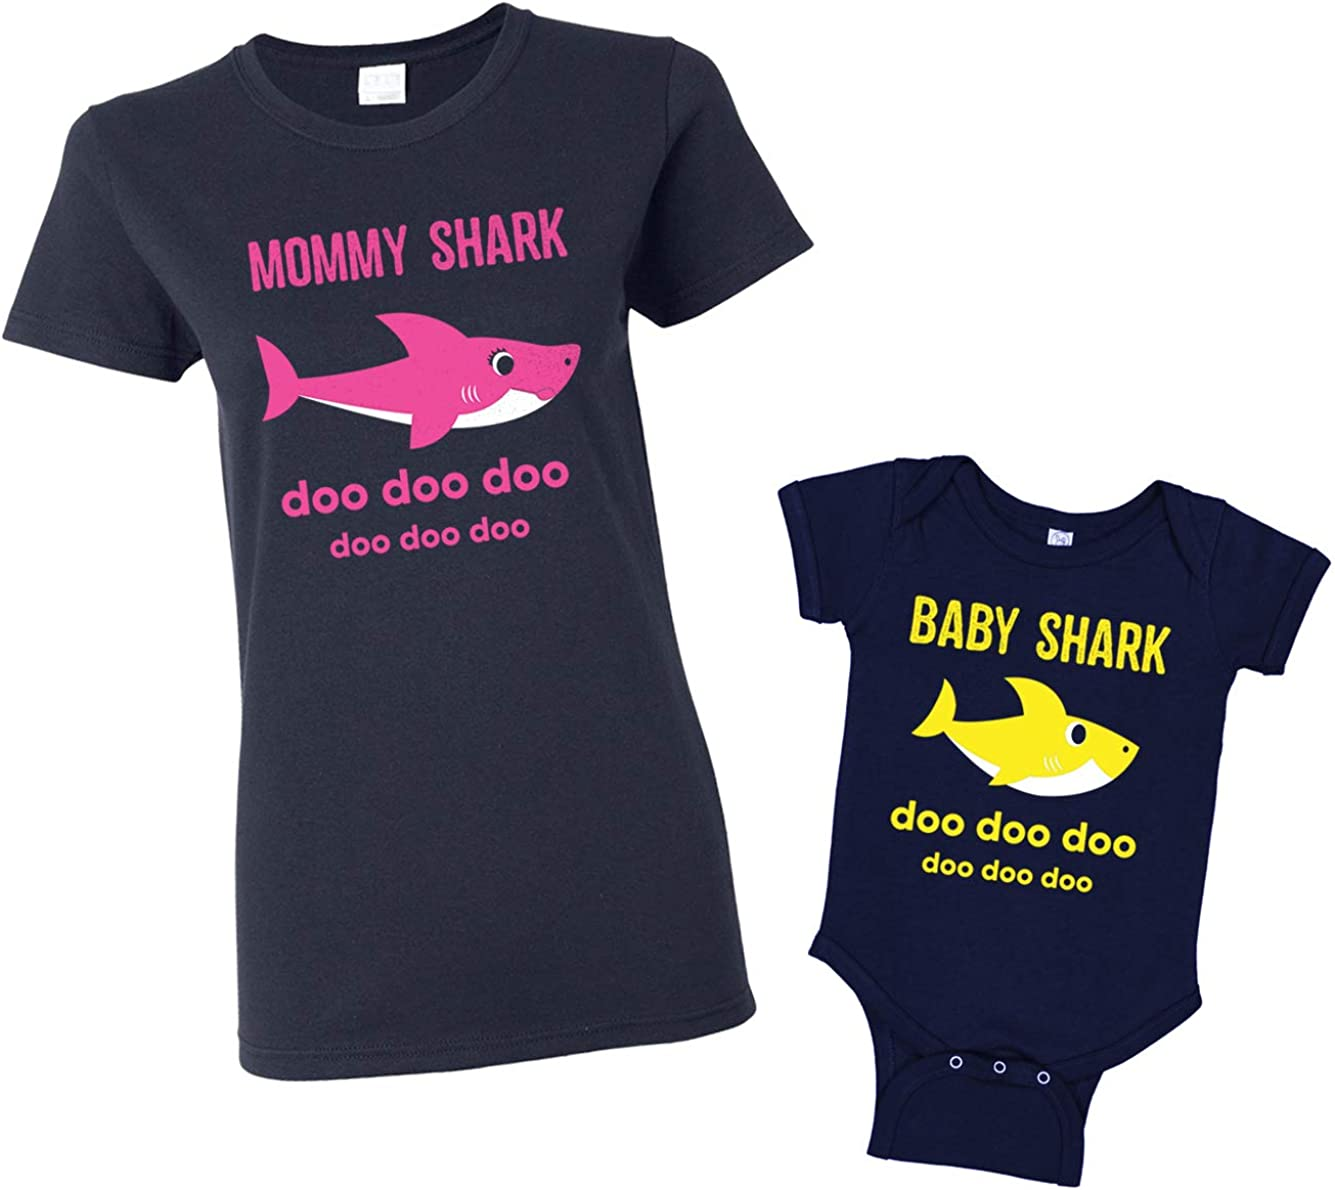 Mommy Shark & Baby Shark Women's T-Shirt & Infant Bodysuit Matching Set